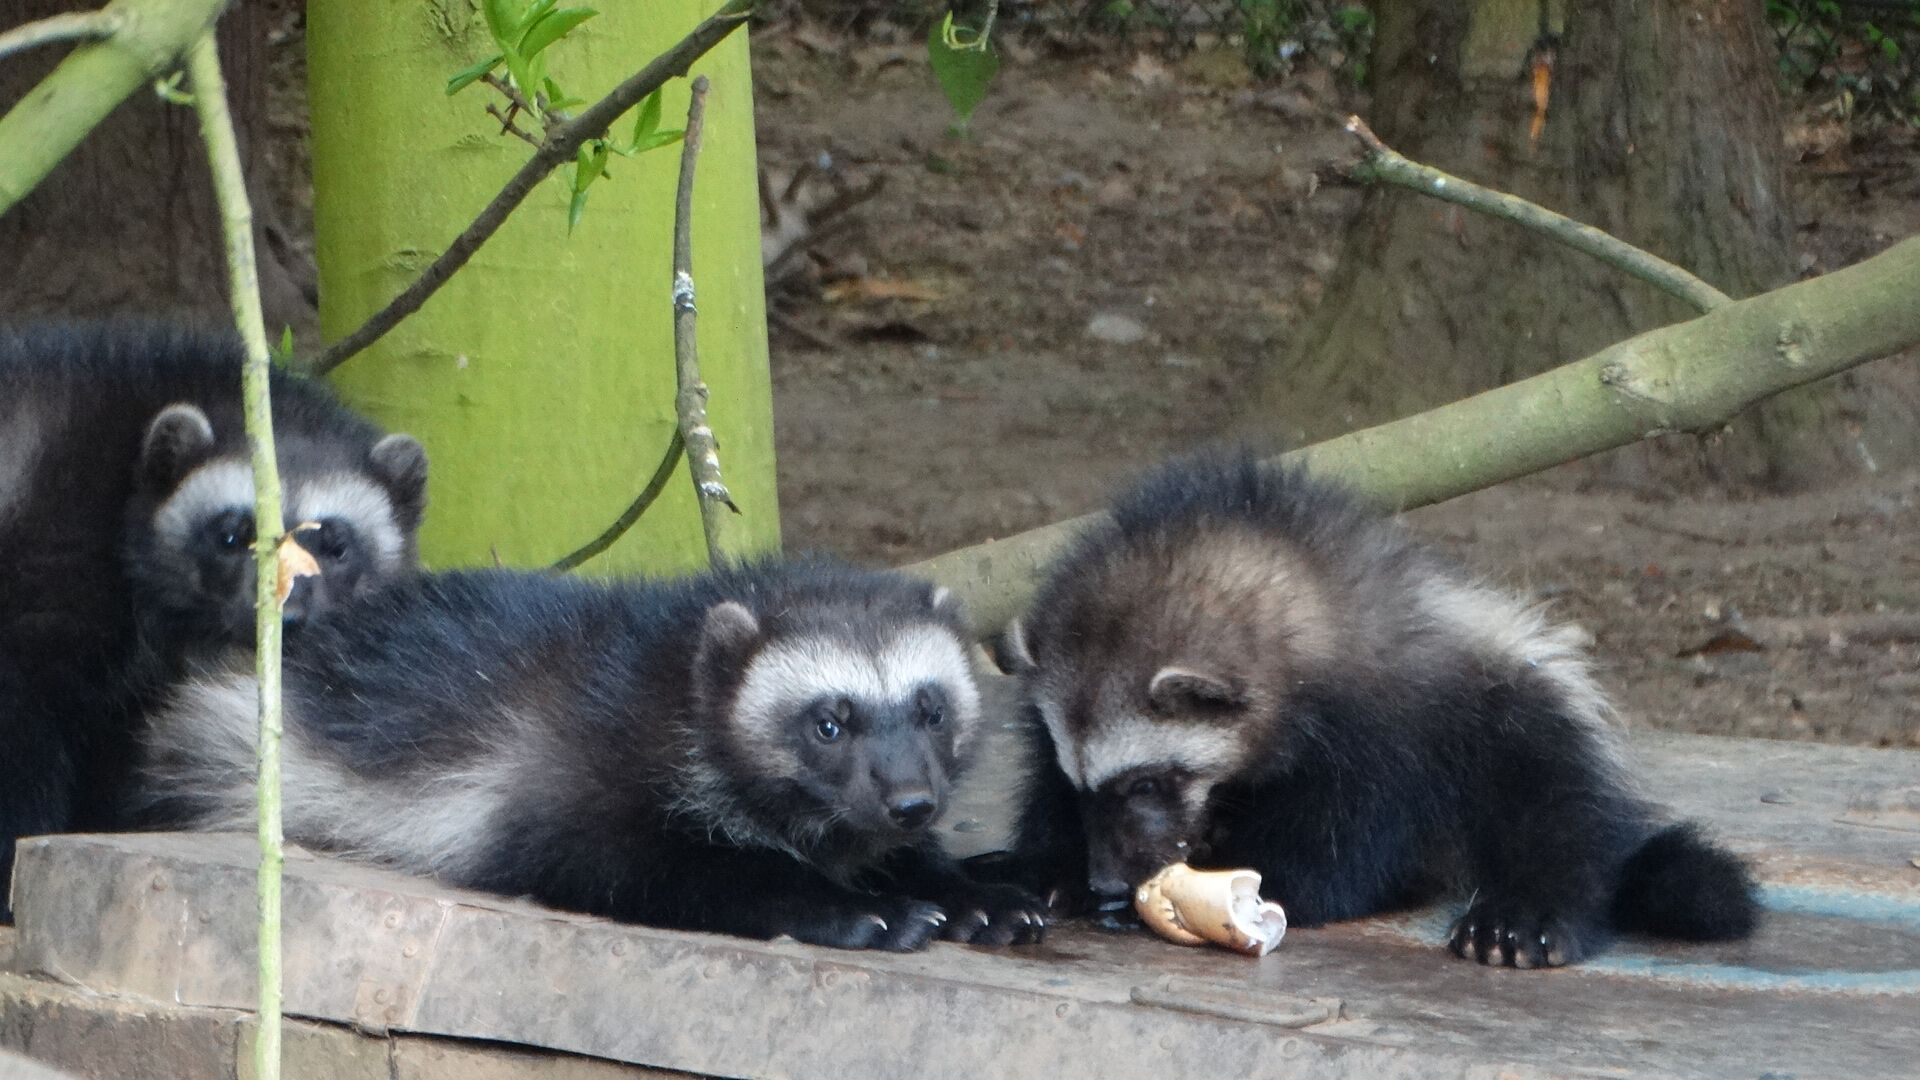 The Wolverine triplets feeding. Picture courtesy of Cotswold Wildlife Park.